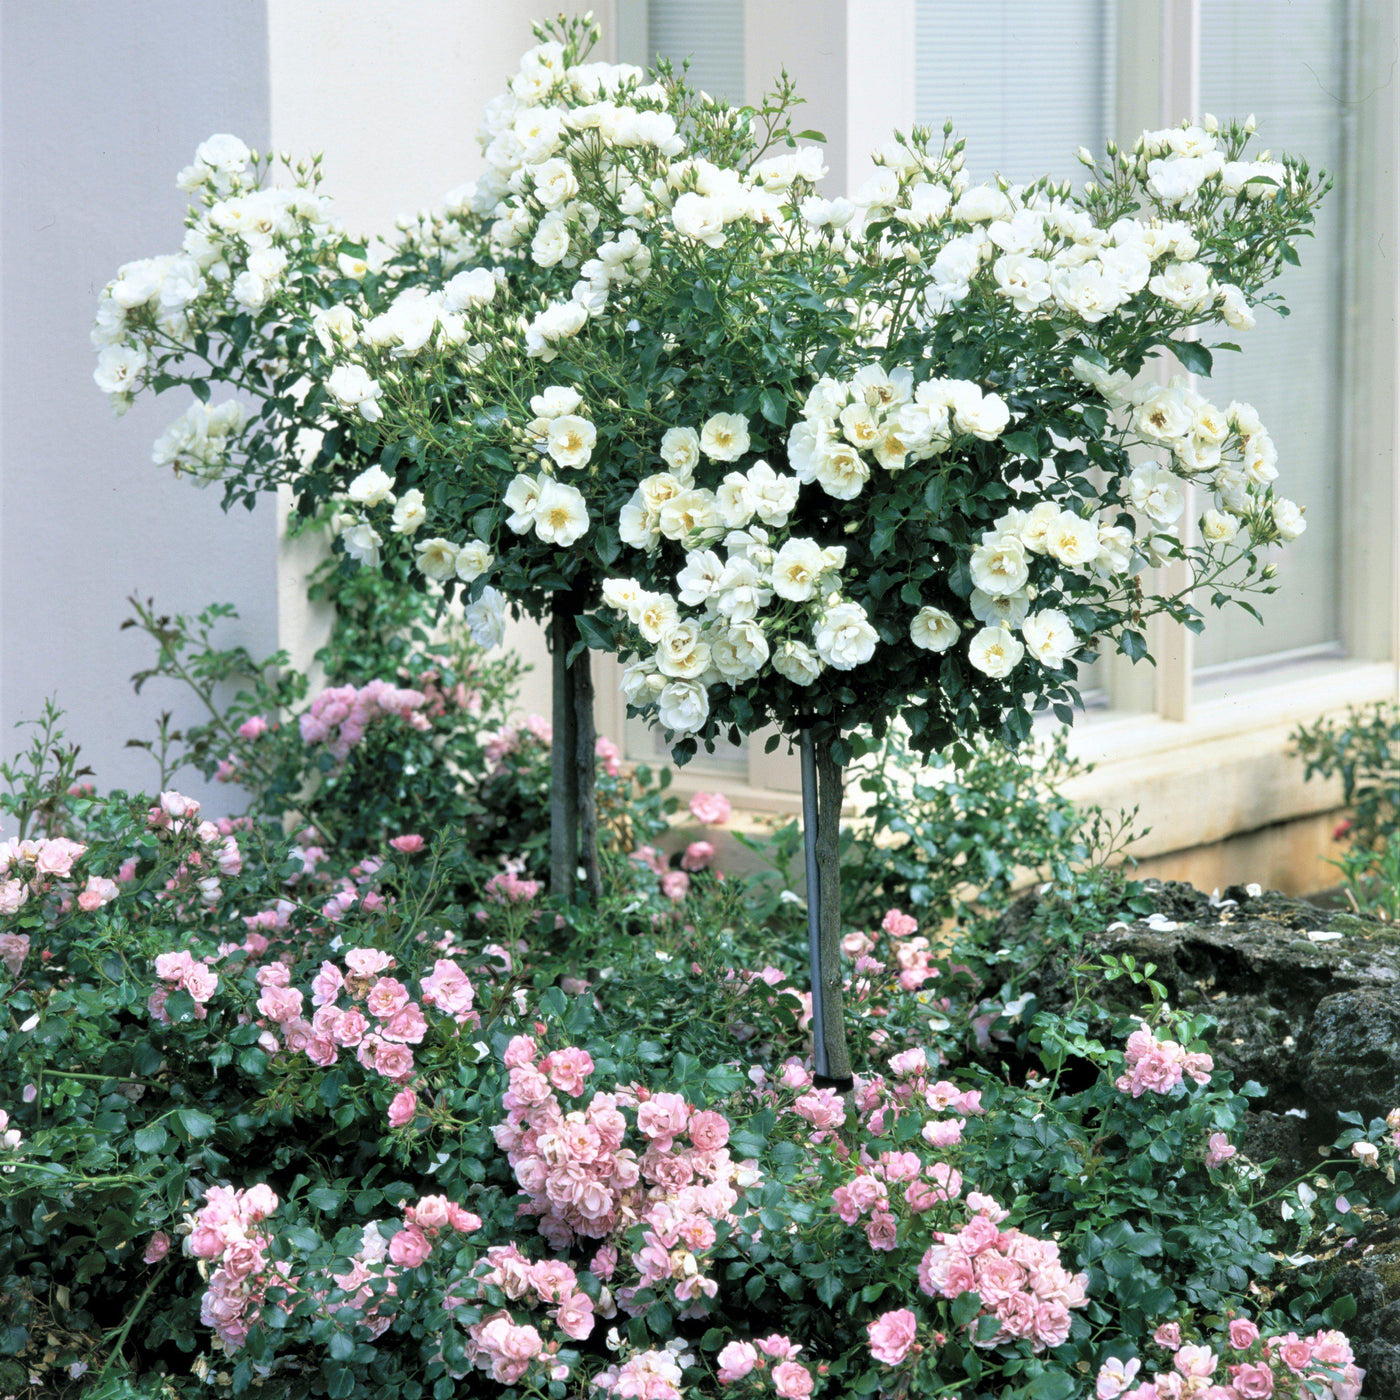 Flower carpet rose white easy to grow bulbs flower carpet rose white mightylinksfo Image collections